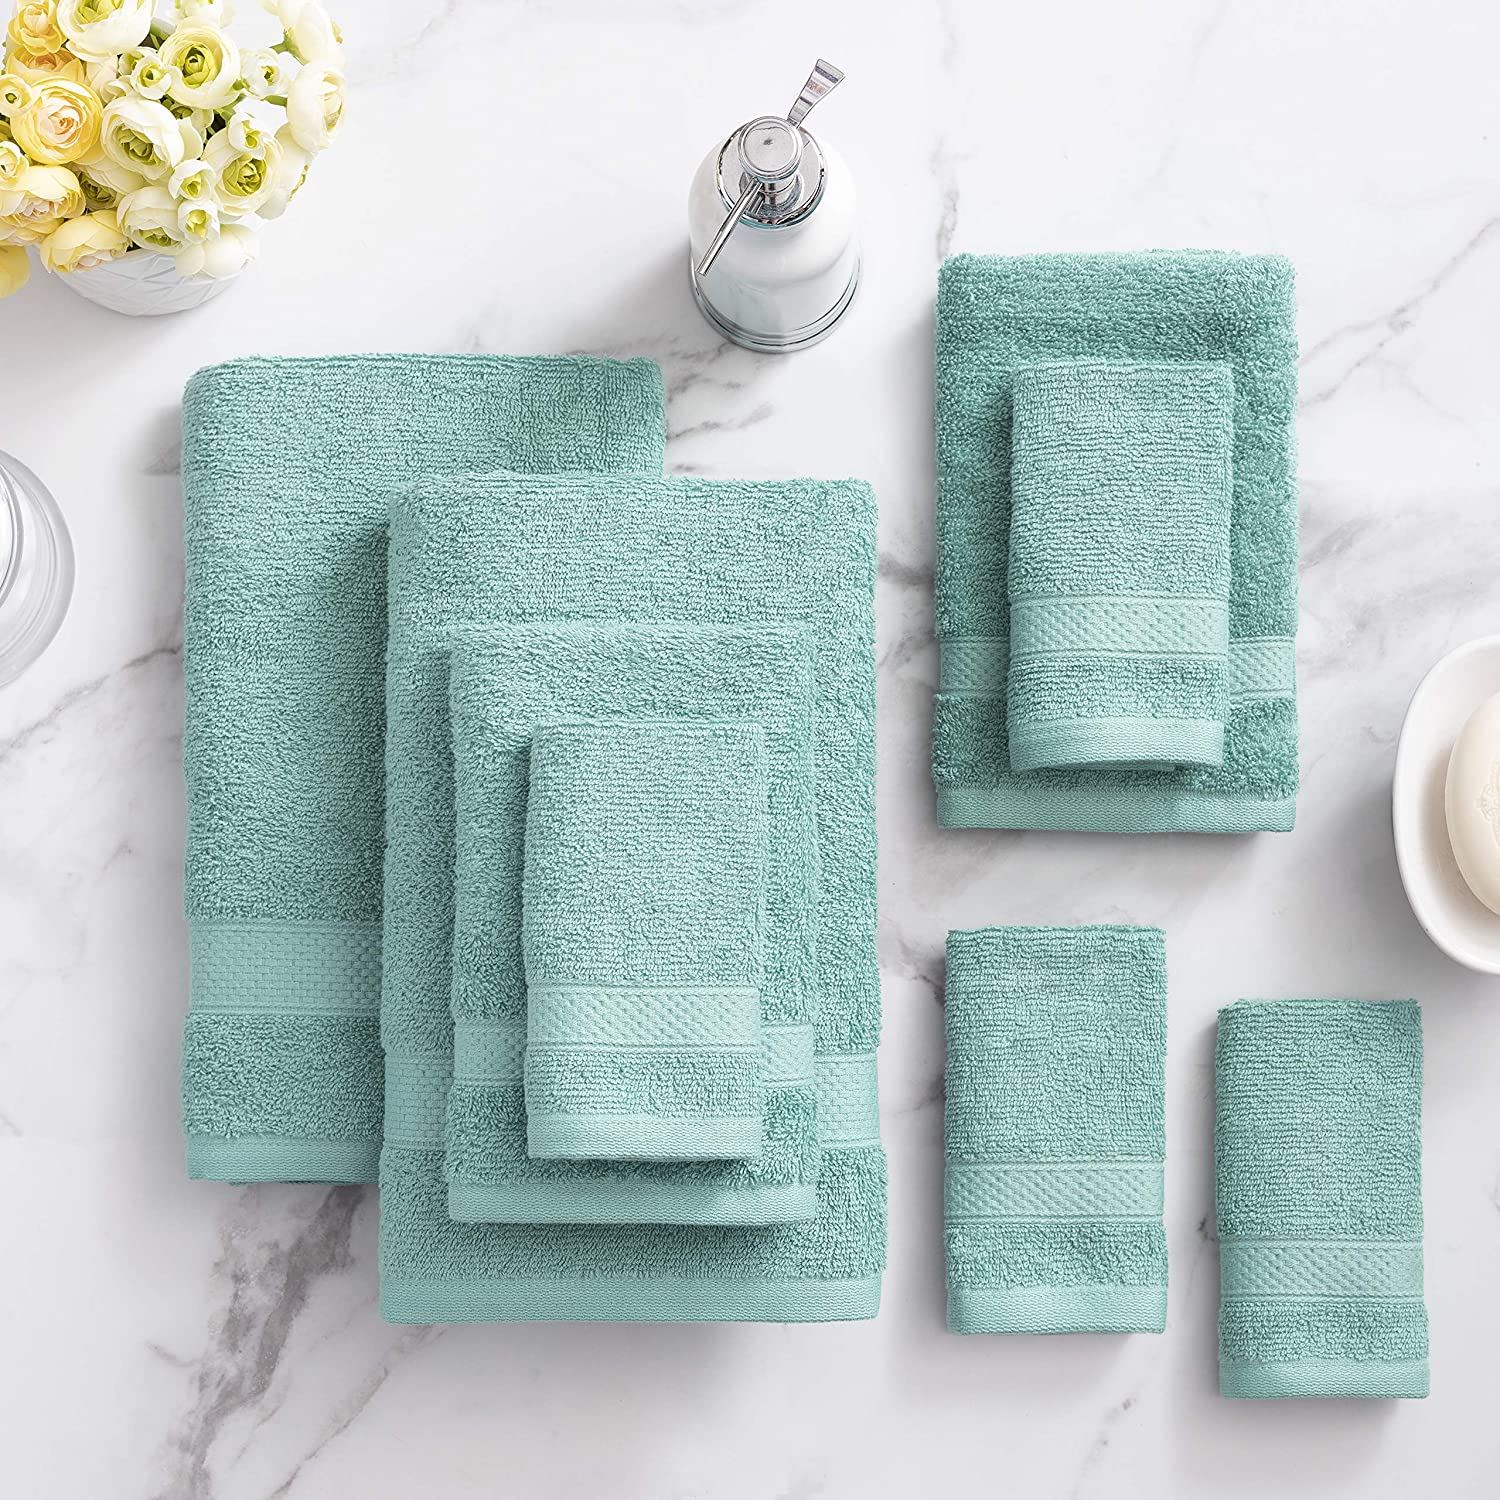 Welhome Basic 100% Cotton Towel Outlet ☆ Free Shipping Mesa Mall Duck Quick Piece Egg 8 Set -